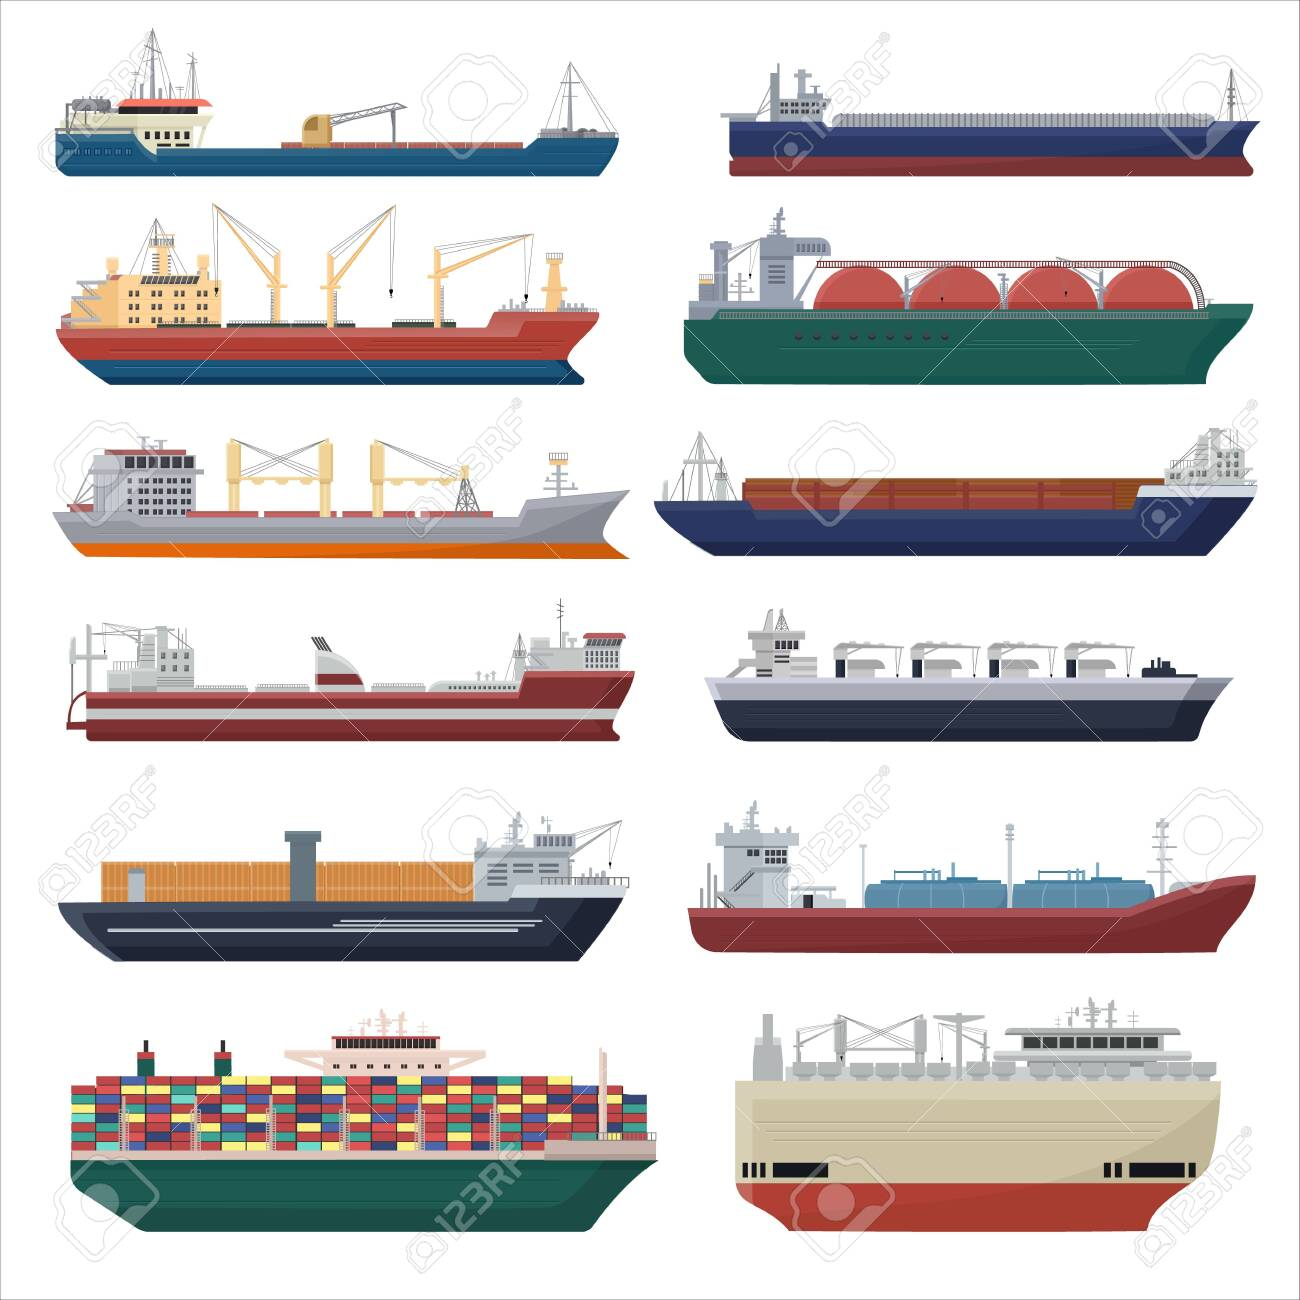 Cargo ship vector shipping transportation export container illustration set of industrial business freight transport shipment isolated on white background - 132396769